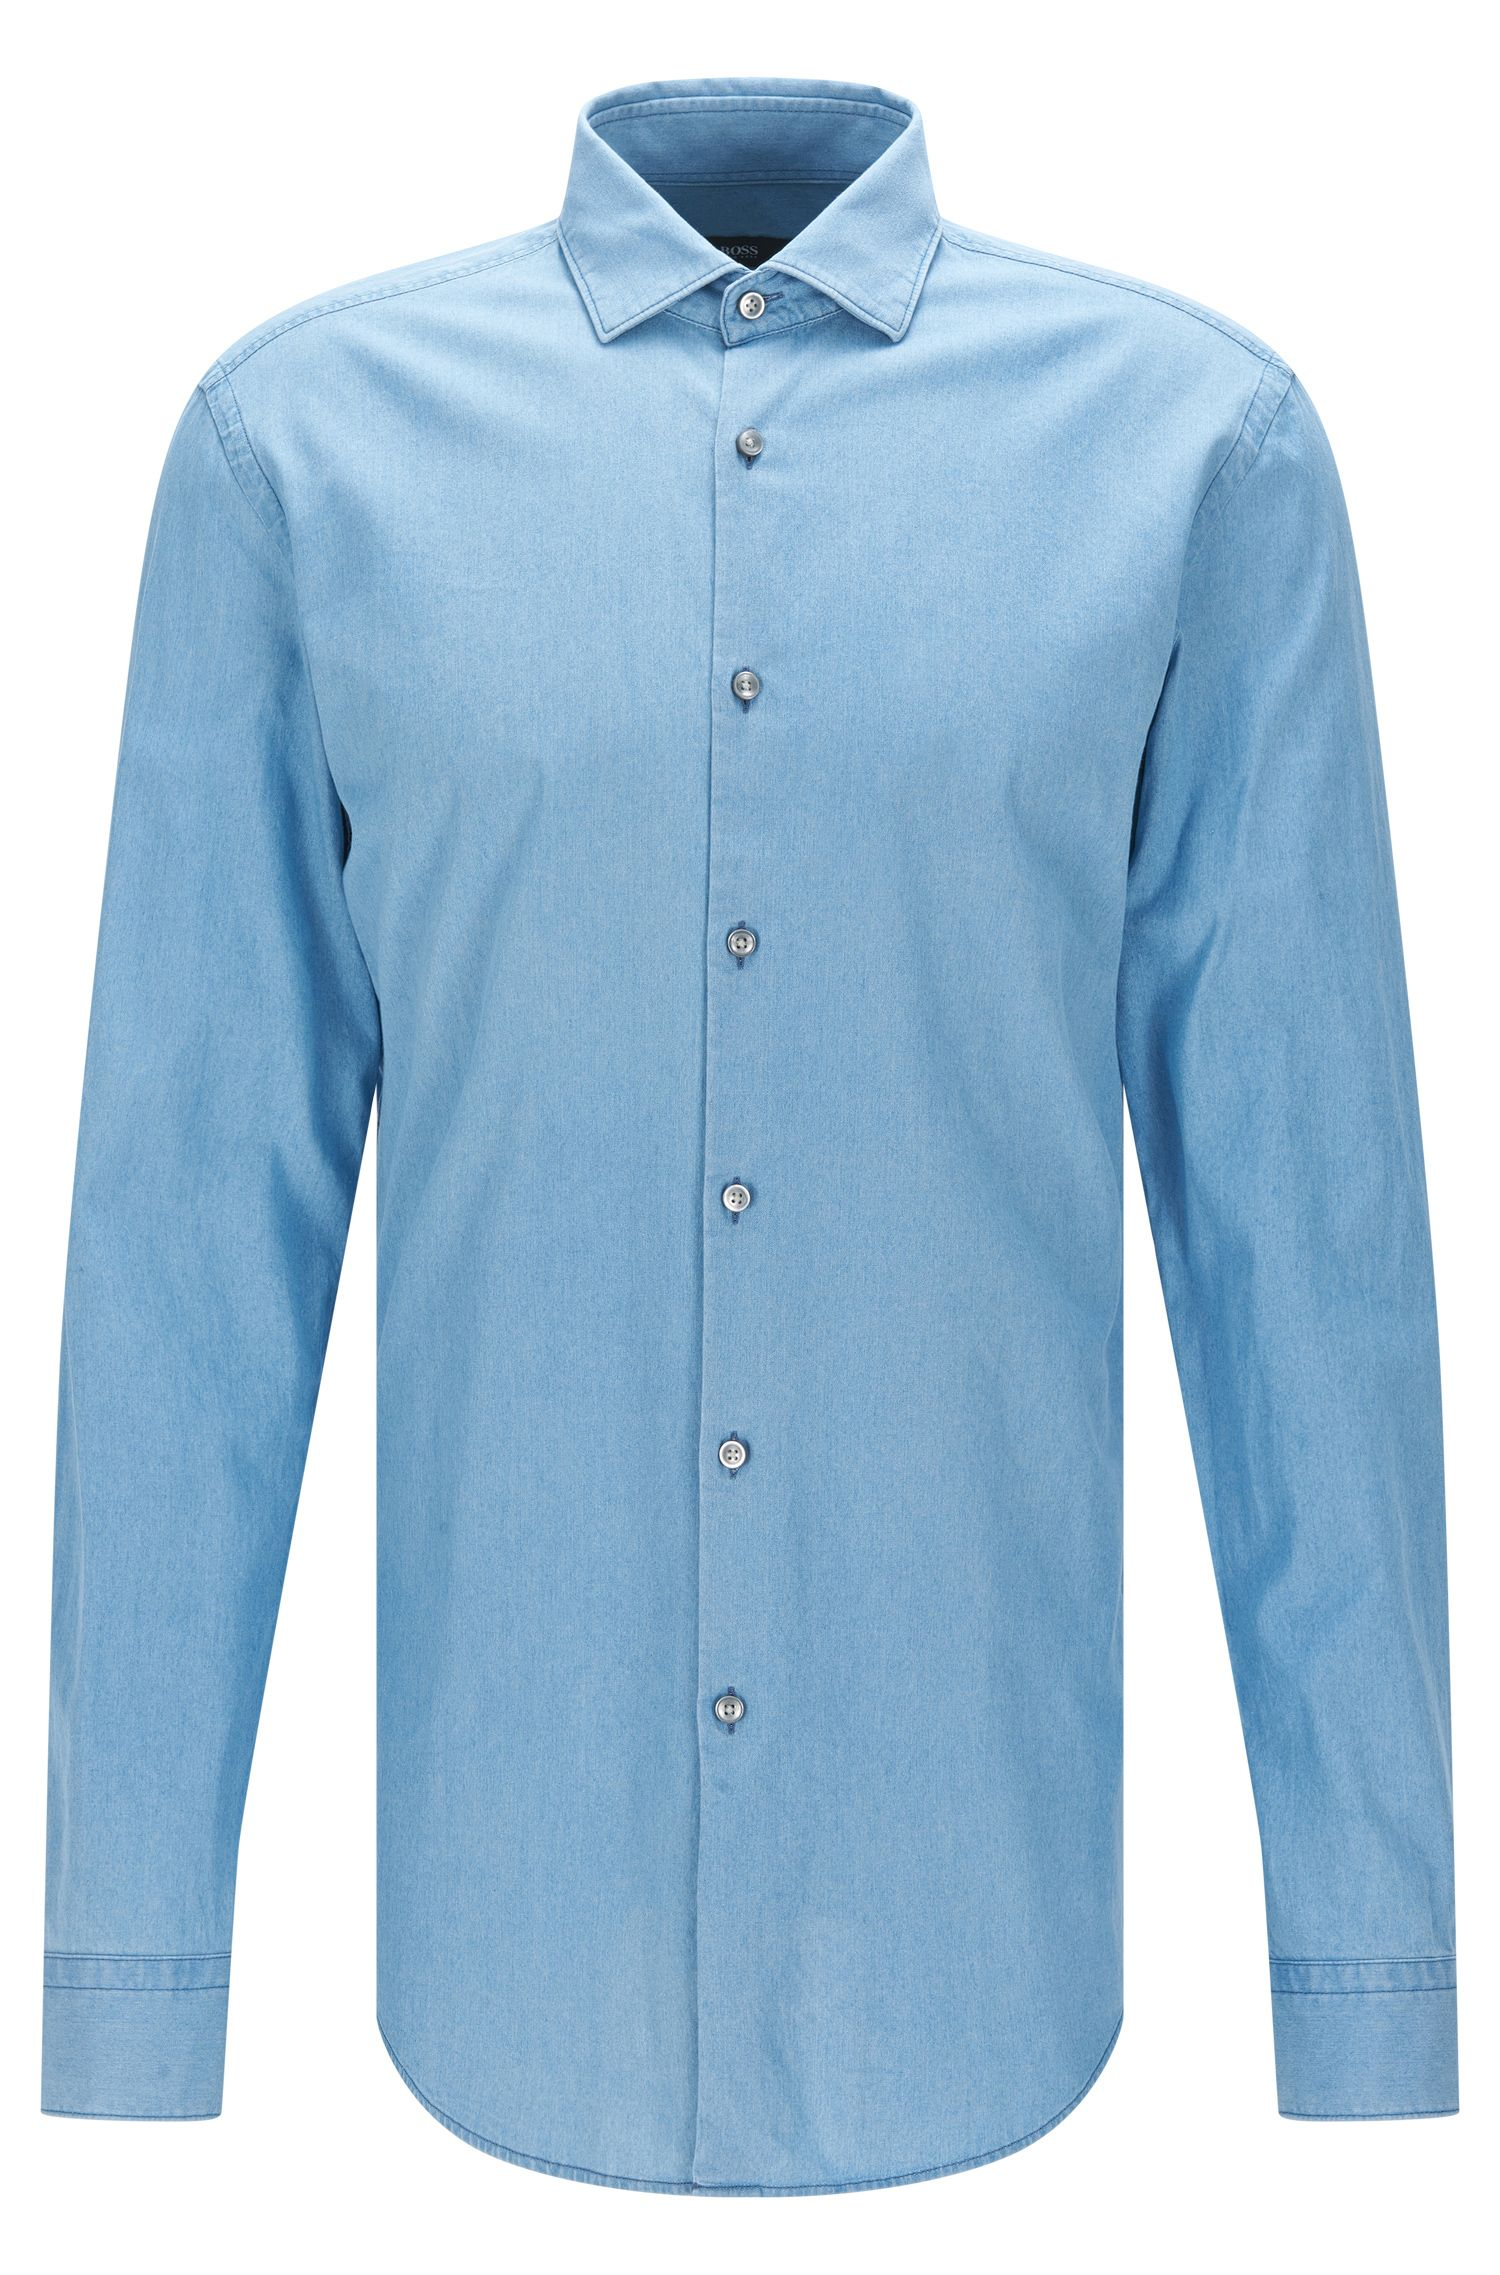 Camisa regular fit en suave tejido vaquero italiano